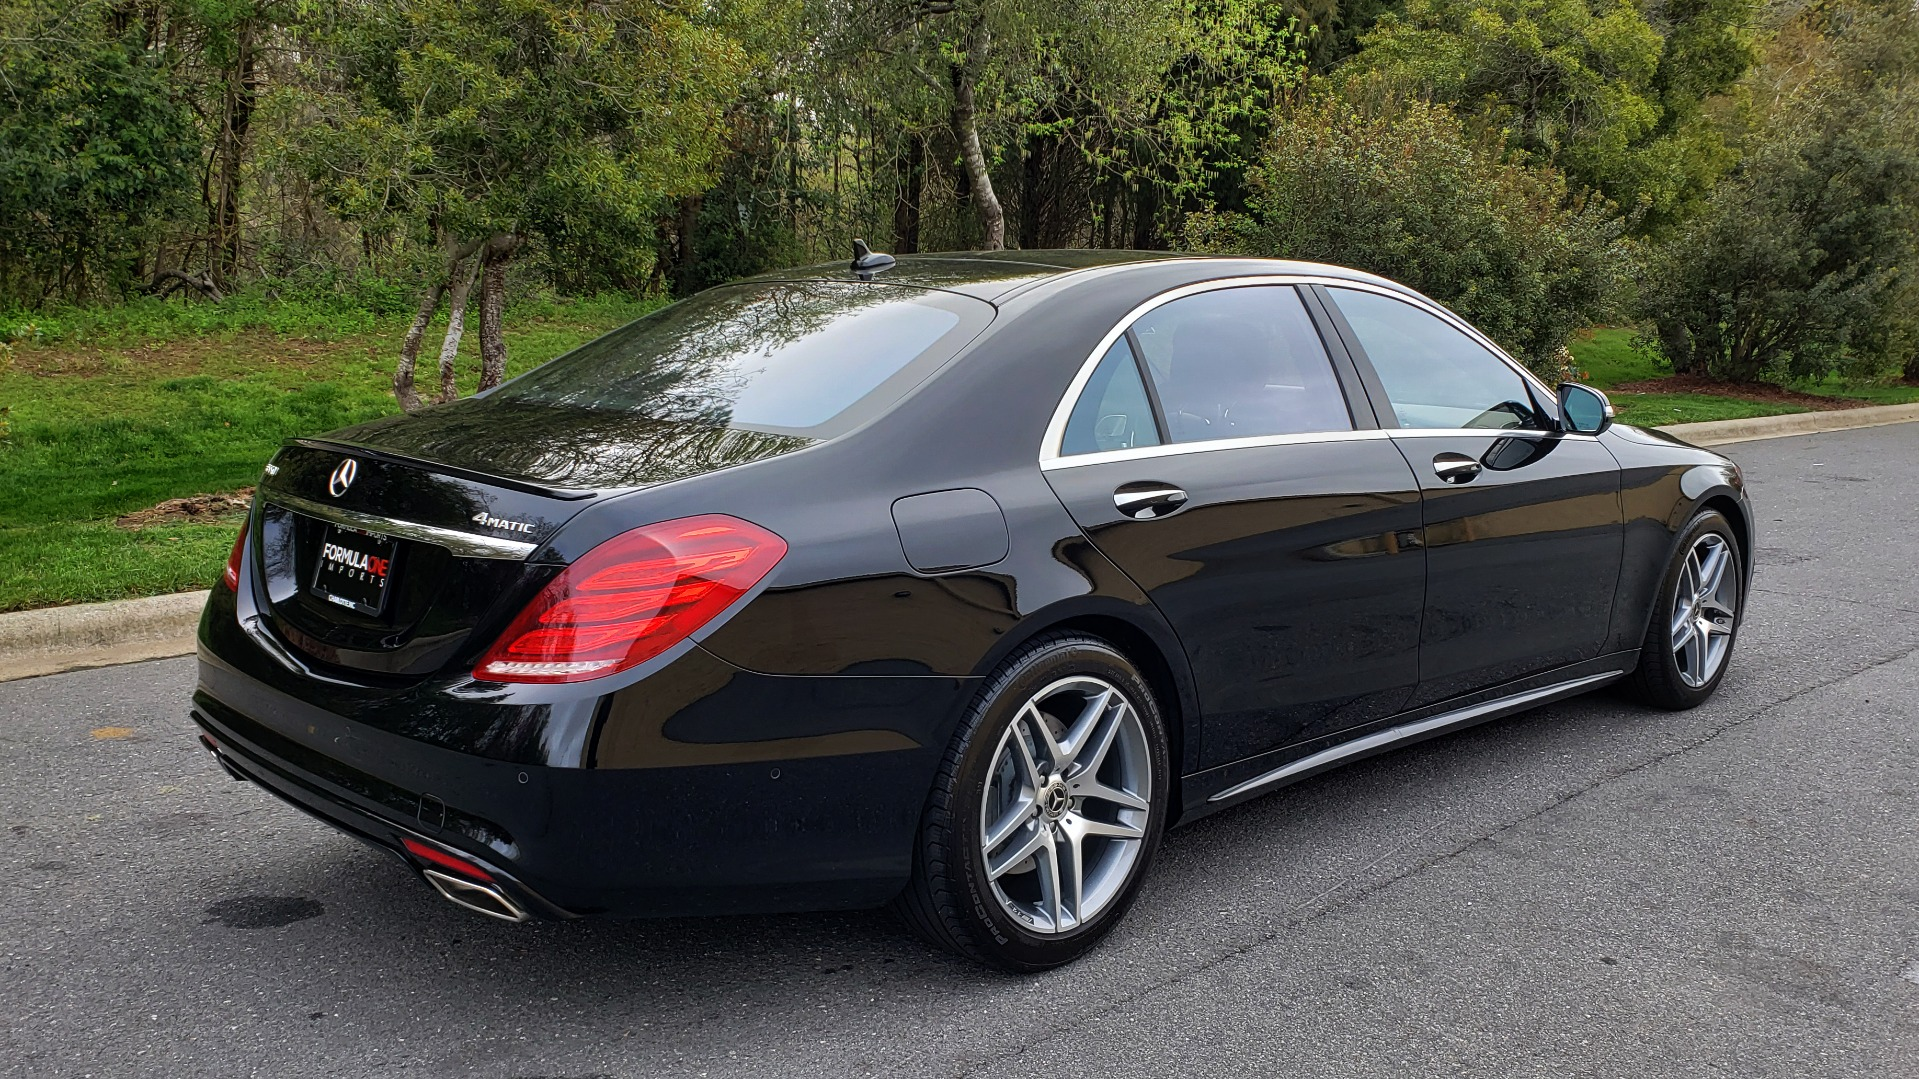 Used 2017 Mercedes-Benz S-CLASS S 550 4MATIC SPORT / PREM PKG / WARMTH & COMFORT / KEYLESS-GO for sale Sold at Formula Imports in Charlotte NC 28227 6